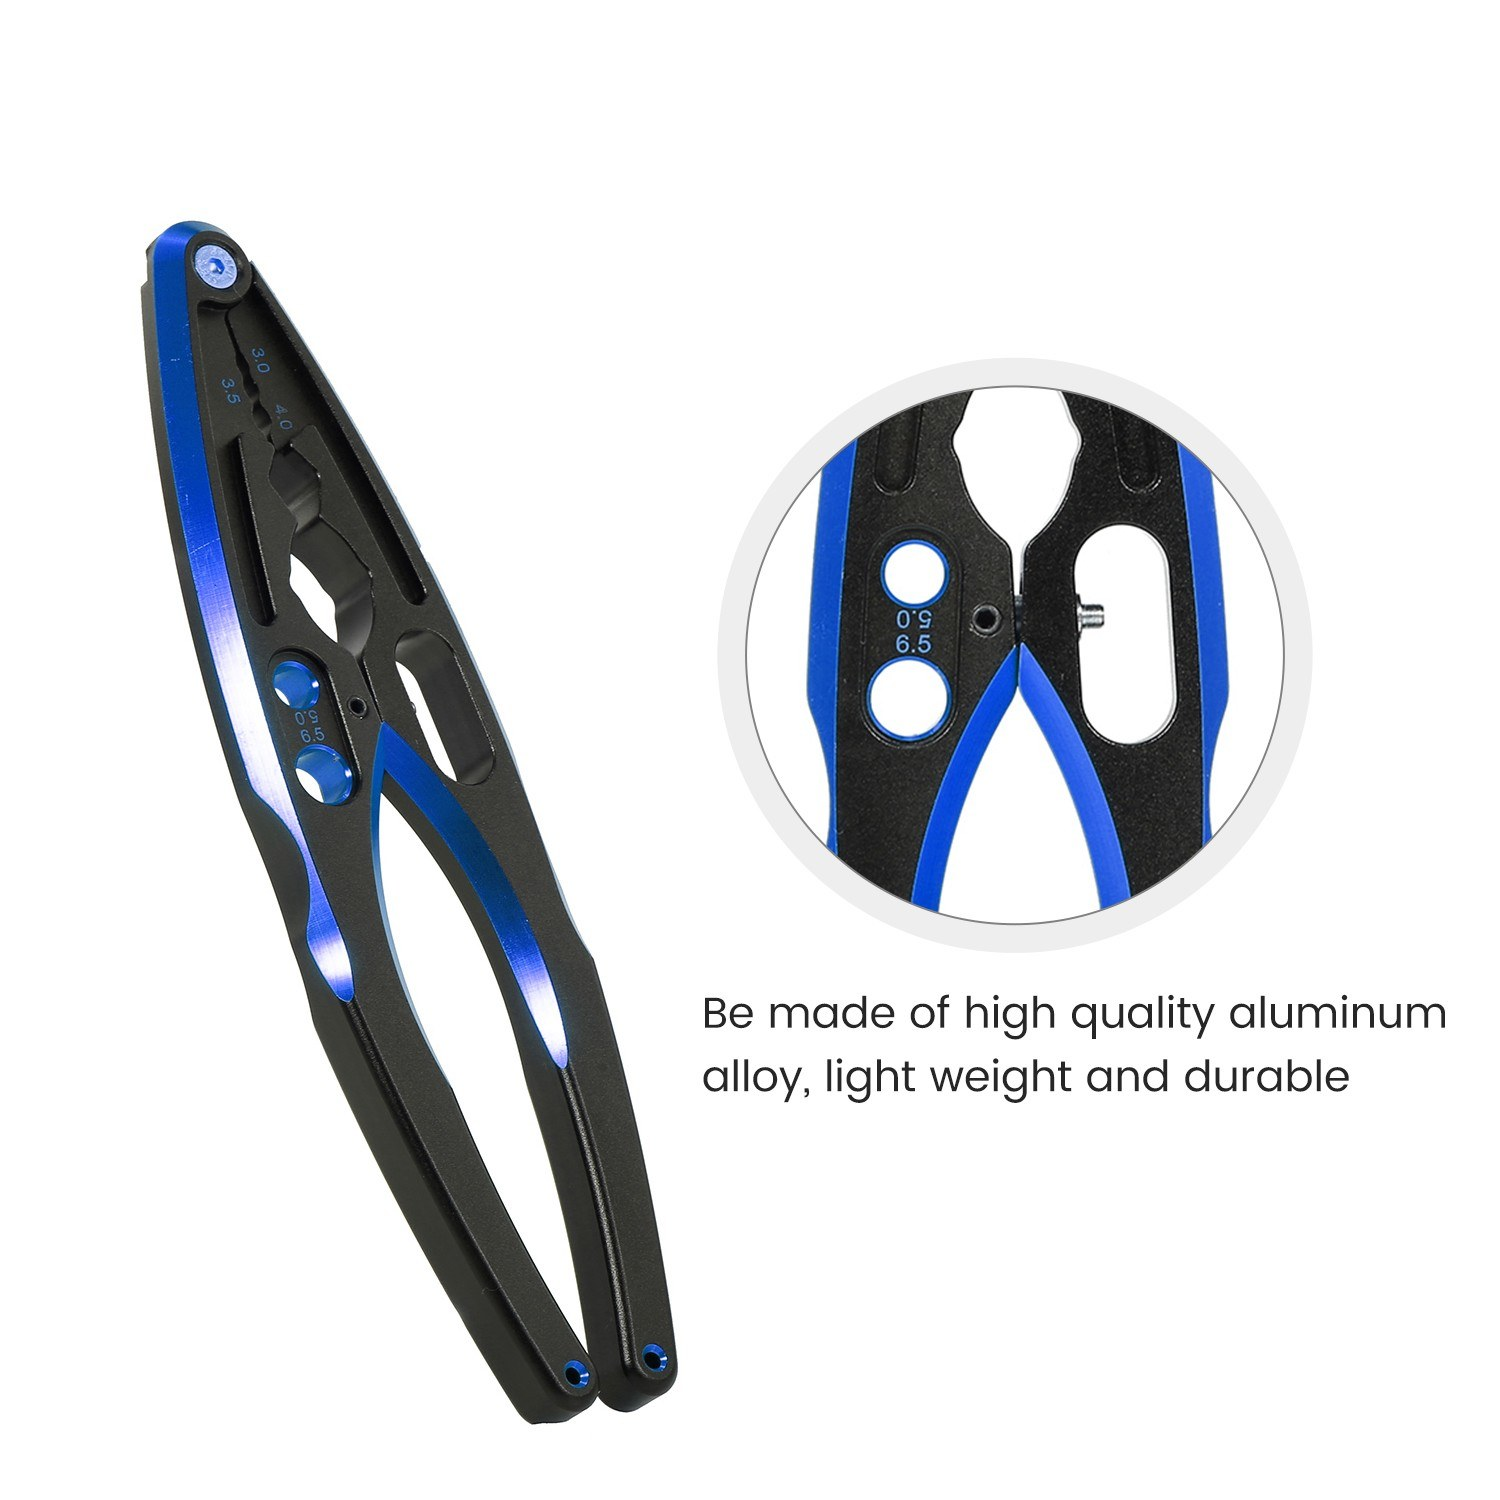 Multifunction Aluminum Alloy Shock Absorber Clamp Pliers Shock Absorber Assembly Disassembly Tool For 1/10 1/8 Traxxas Hsp Rc Blue